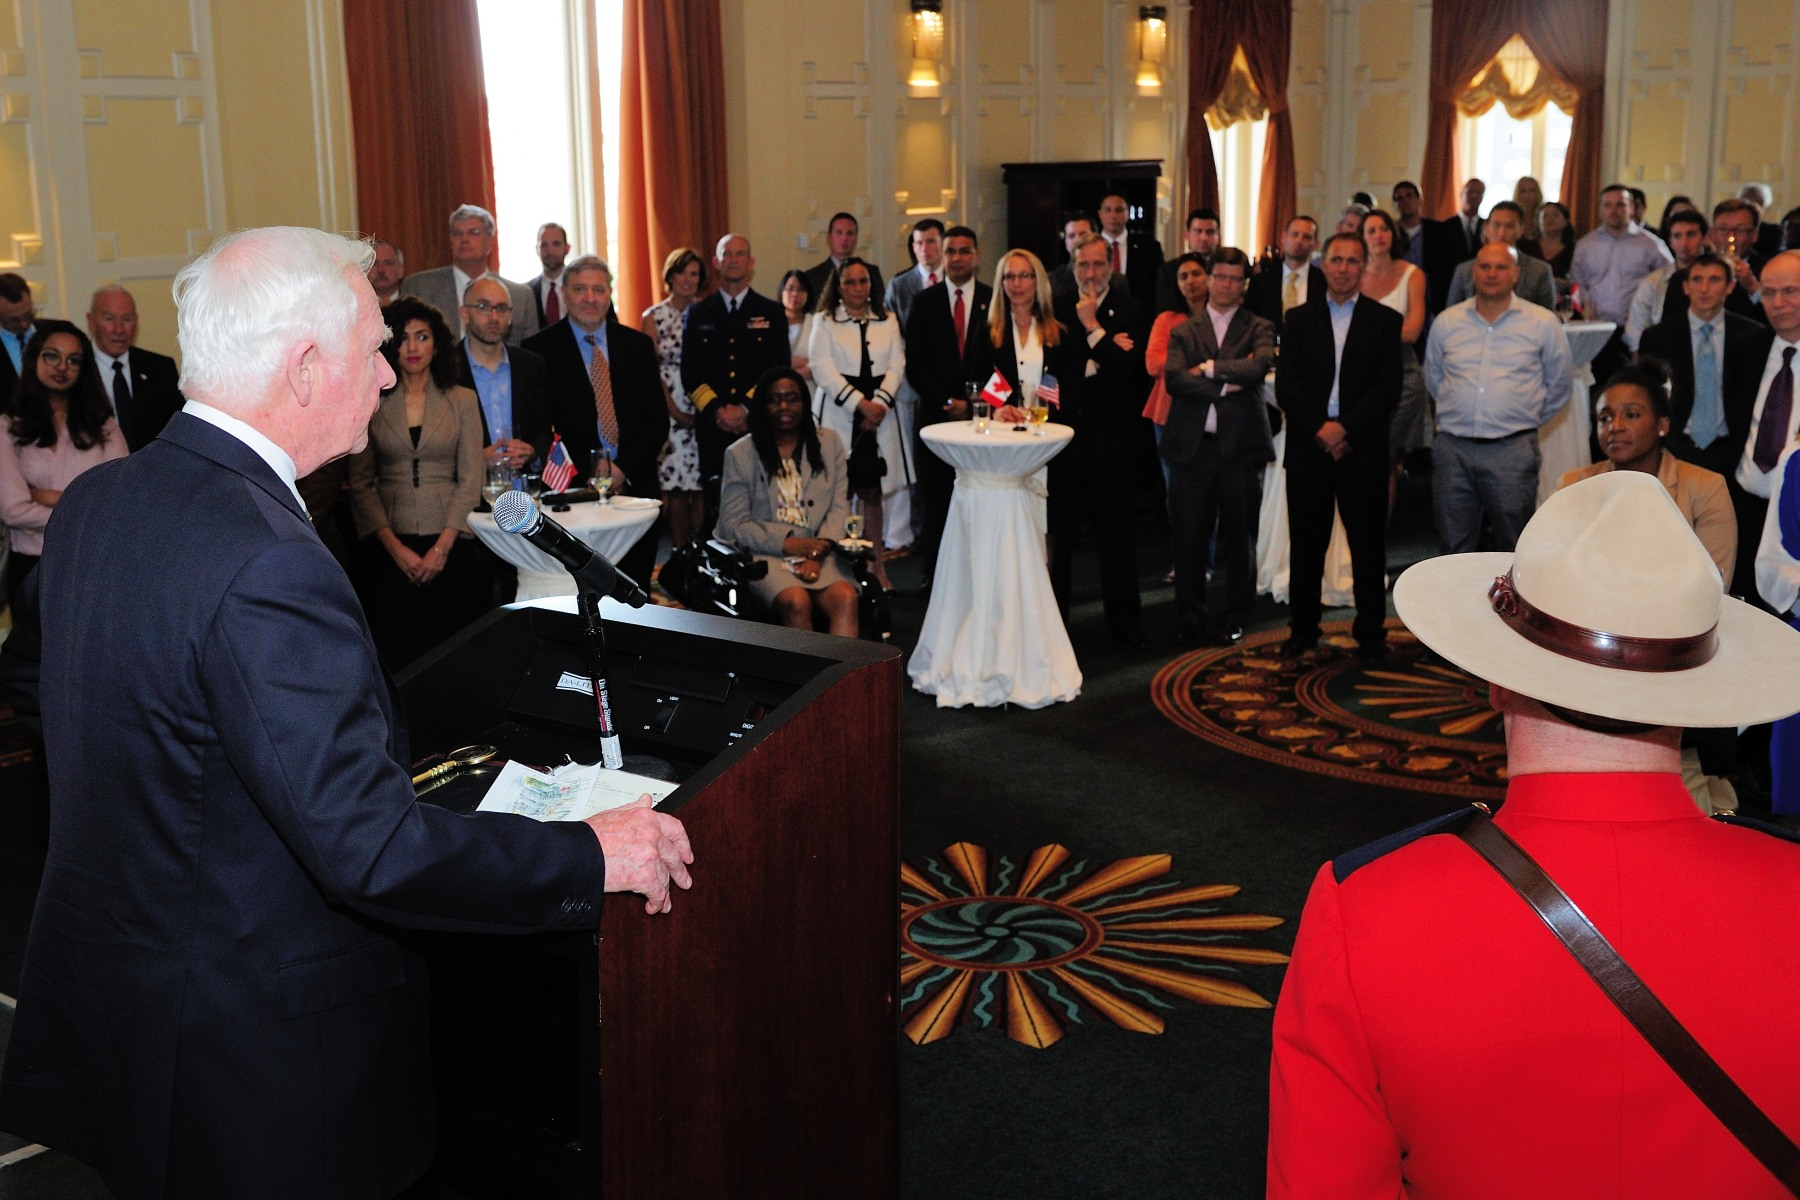 The Governor General then delivered remarks before an audience of elected officials from the federal, state and municipal levels; business and community leaders; academics; and Canadians living in California.